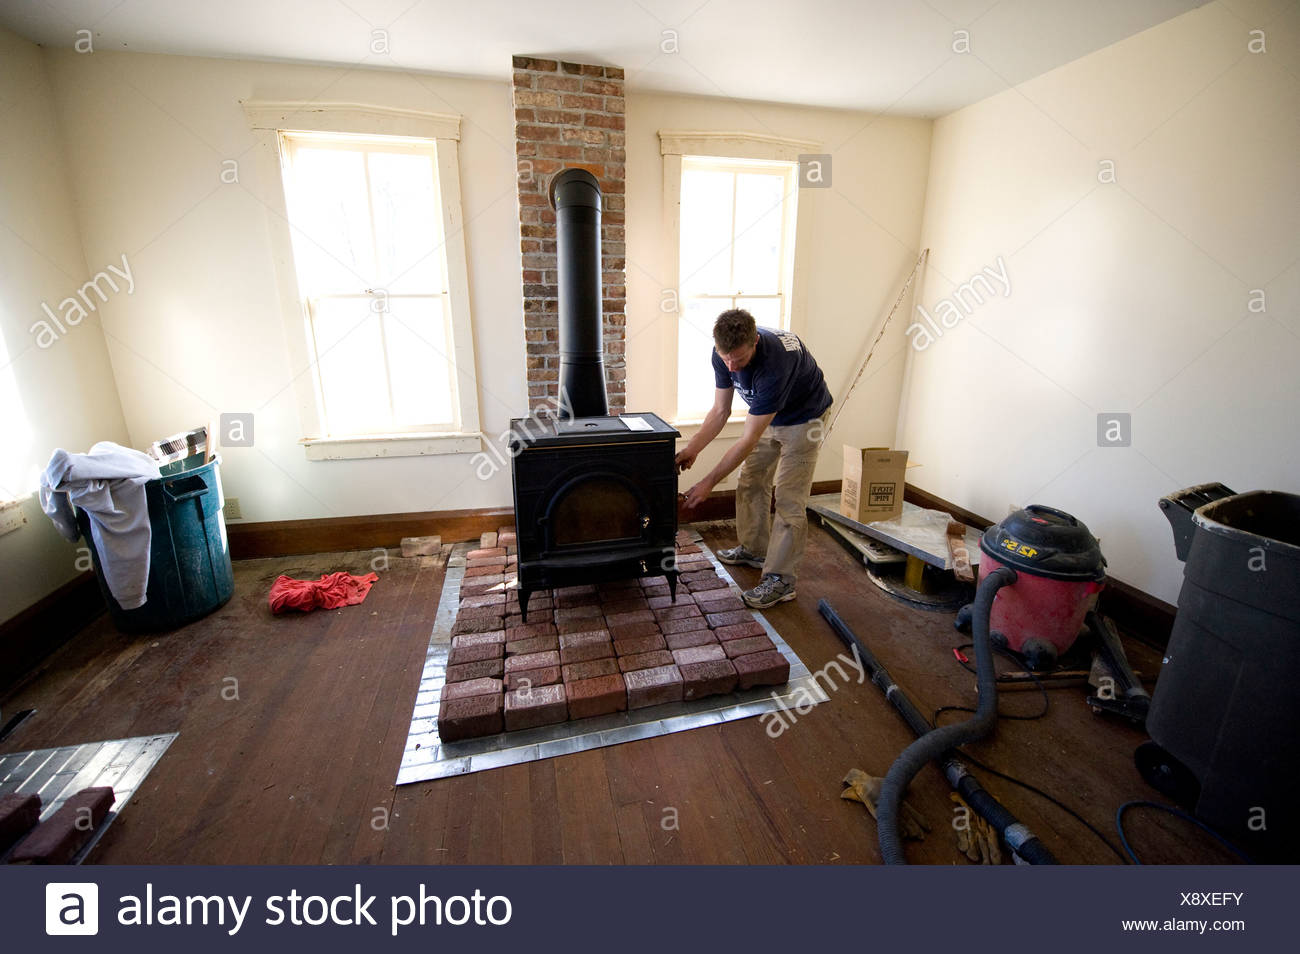 A man works on a wood stove in an old farmhouse in Dunbar, NE. - Stock Image